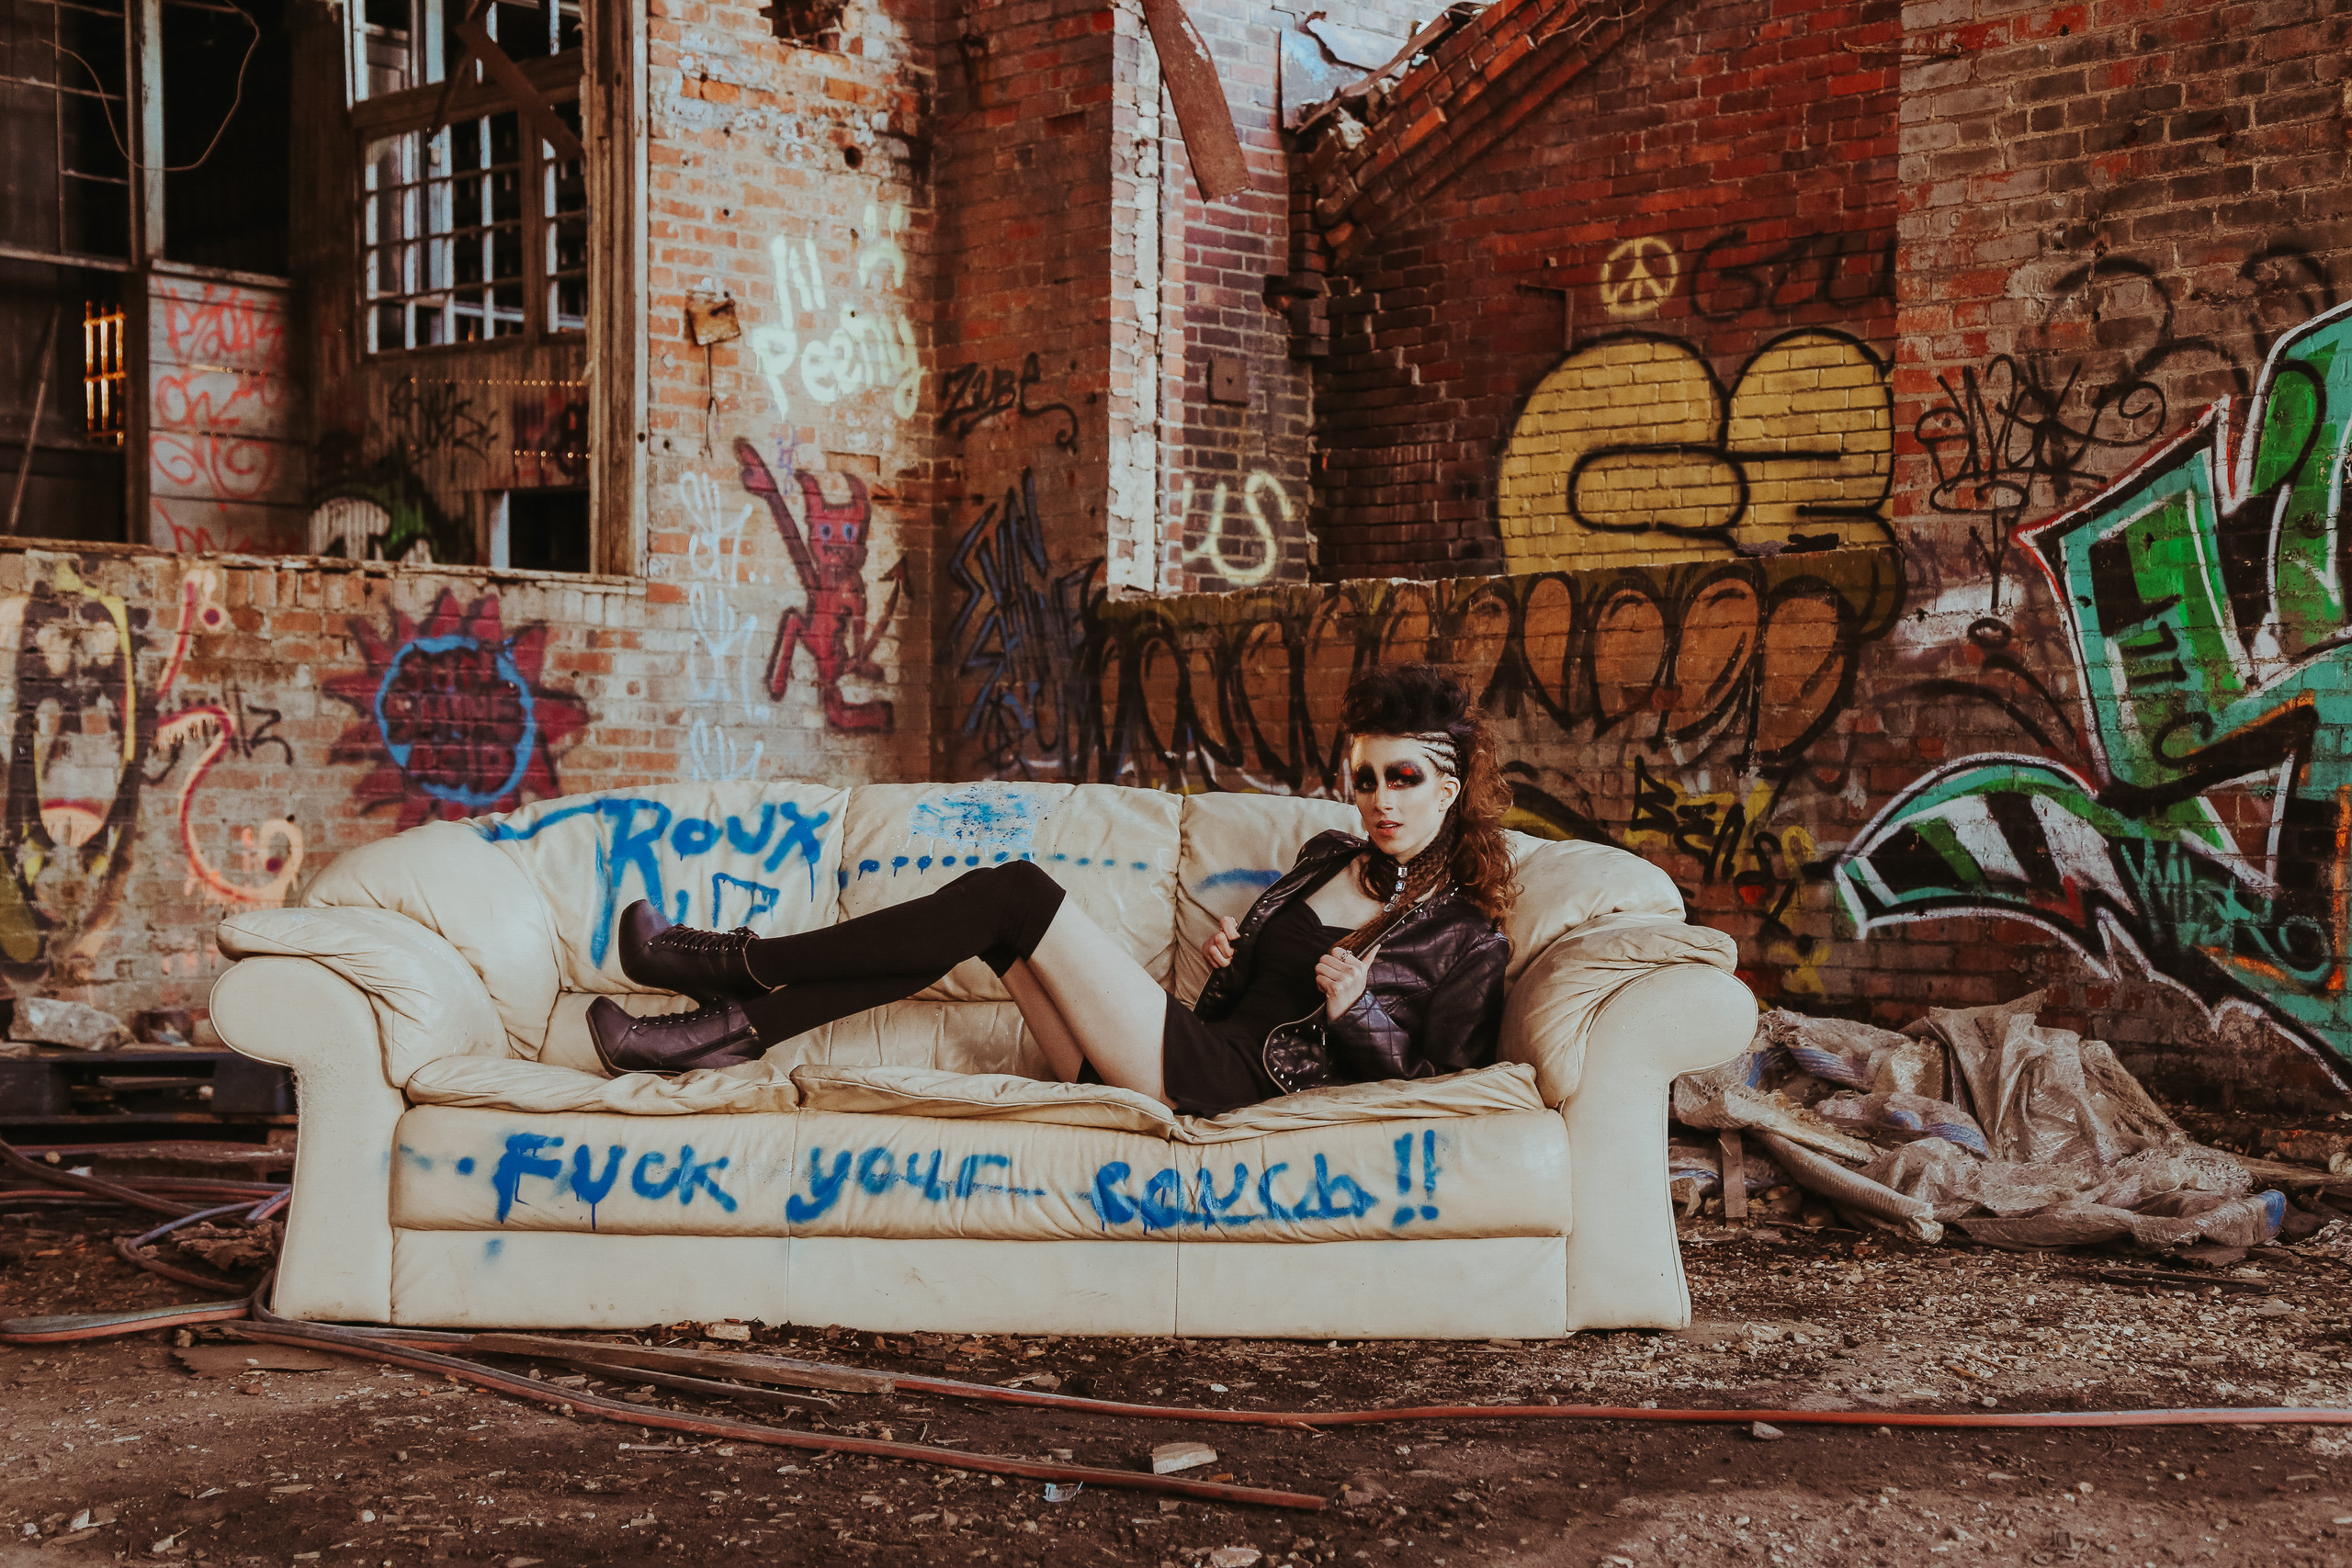 model in abandoned warehouse with graffiti and dirty couch